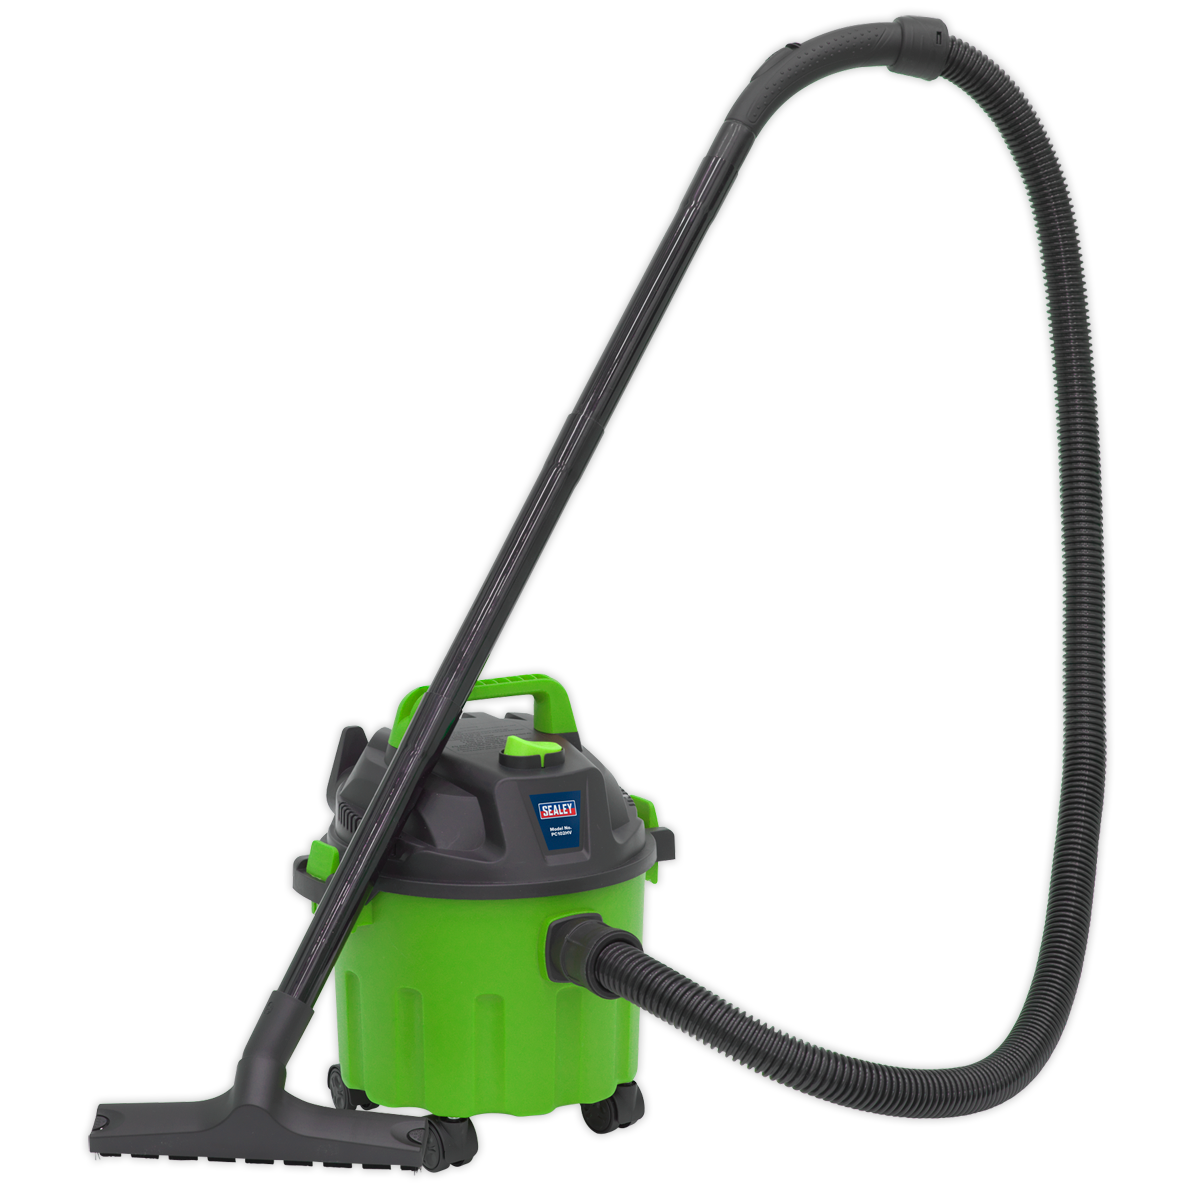 Vacuum Cleaner Wet & Dry 10L 1000W/230V - Hi-Vis Green | High powered, lightweight, wet and dry unit with blower facility. | toolforce.ie